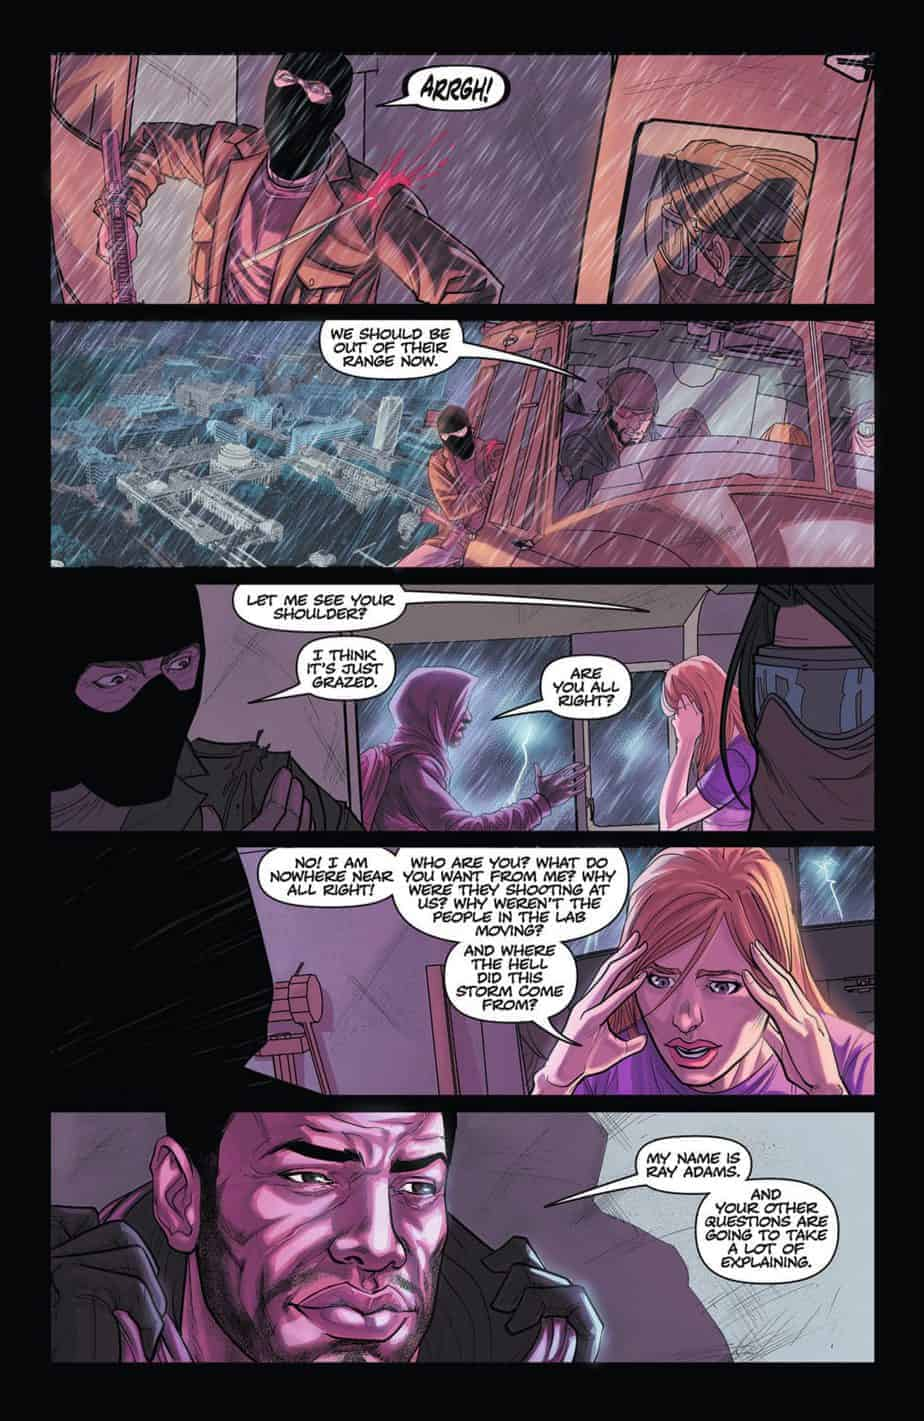 THE FREEZE #1 preview page 4